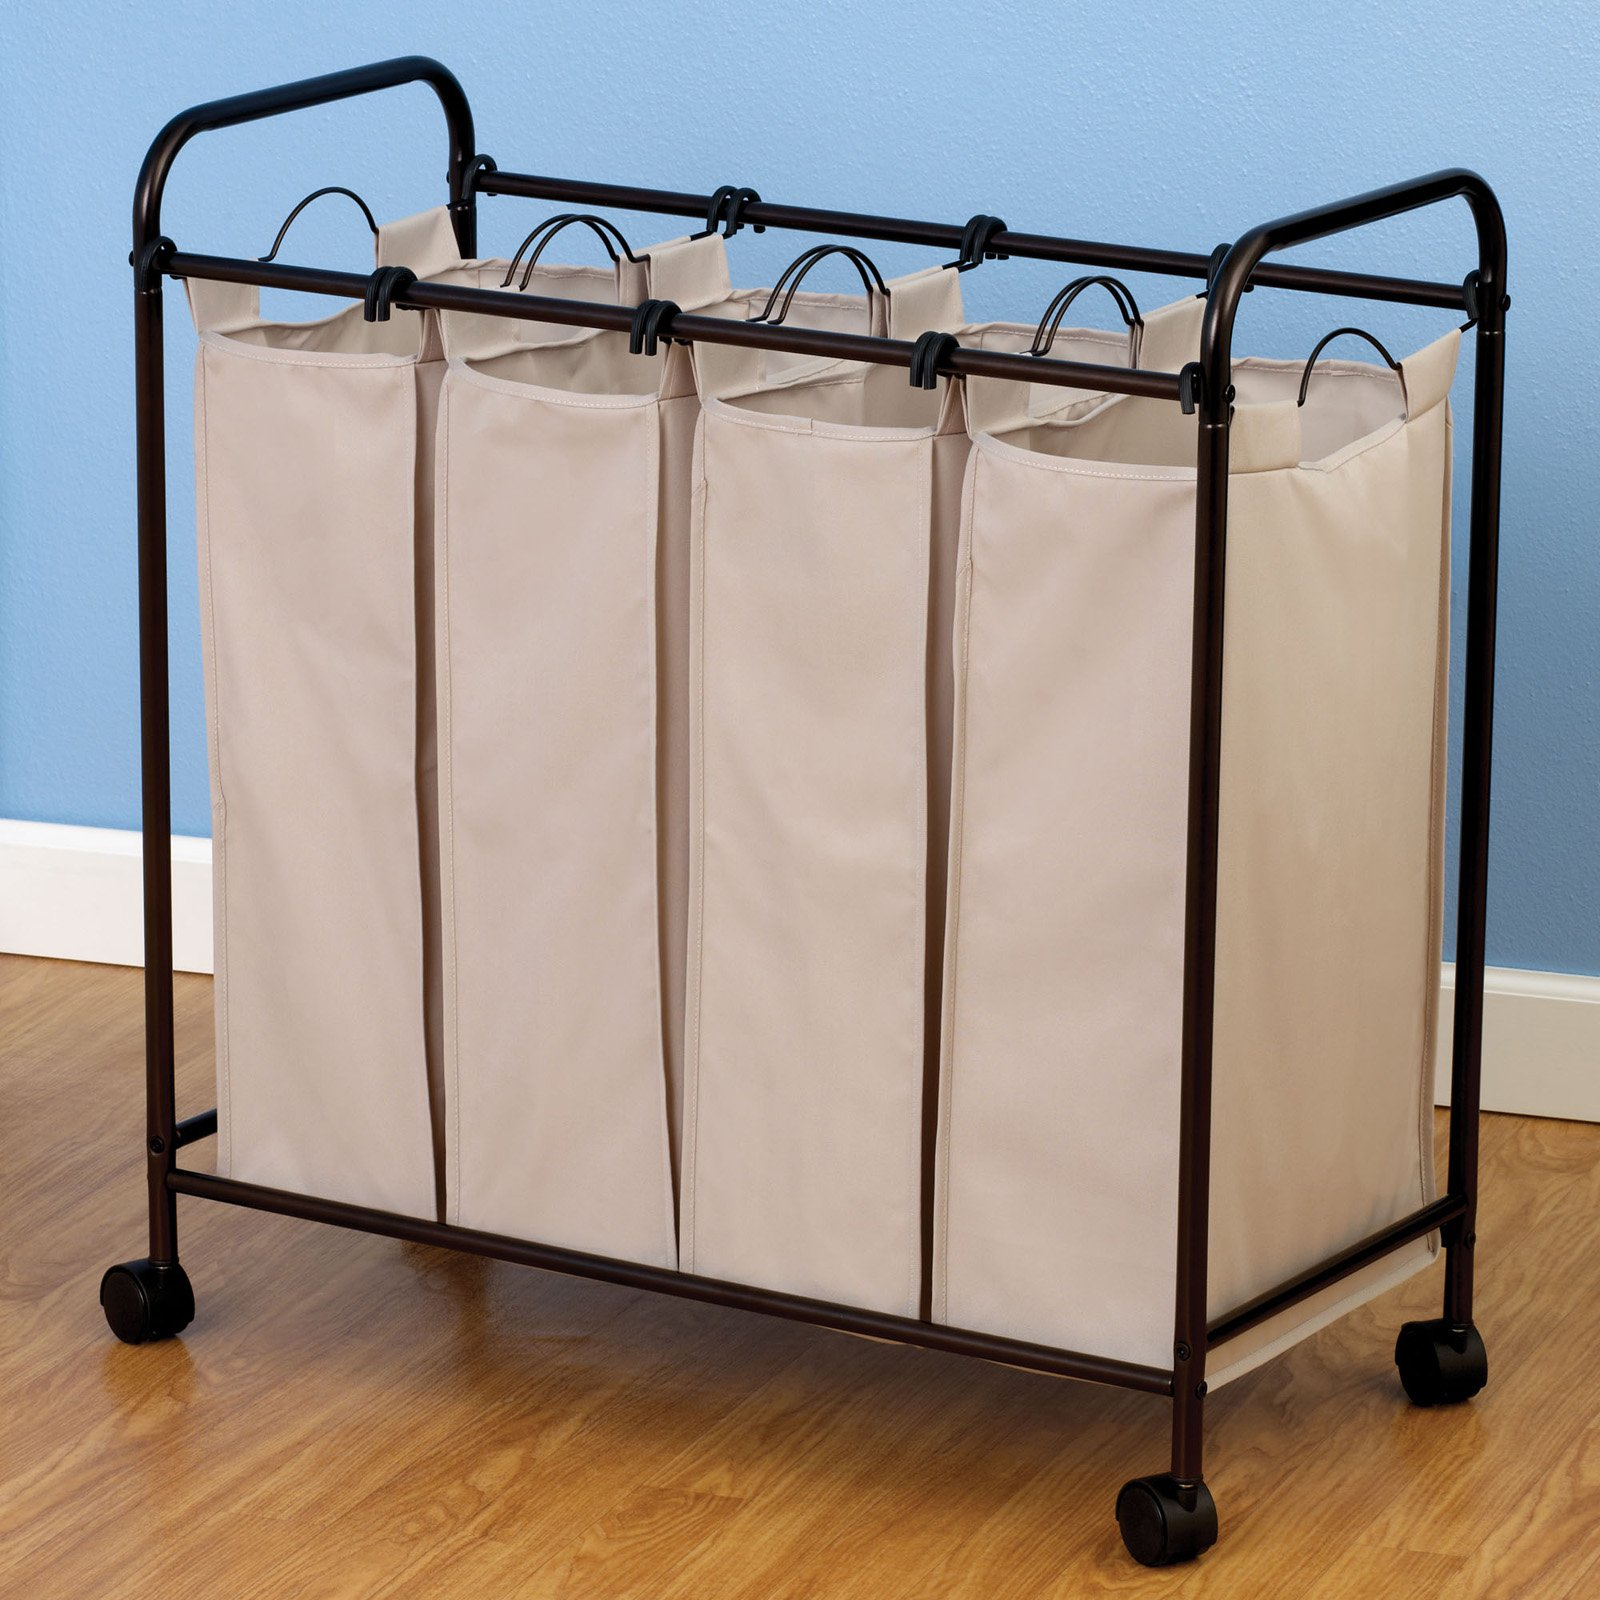 Household Essentials Rolling Quad Sorter Laundry Hamper with Natural Polyester Bags, Antique Bronze